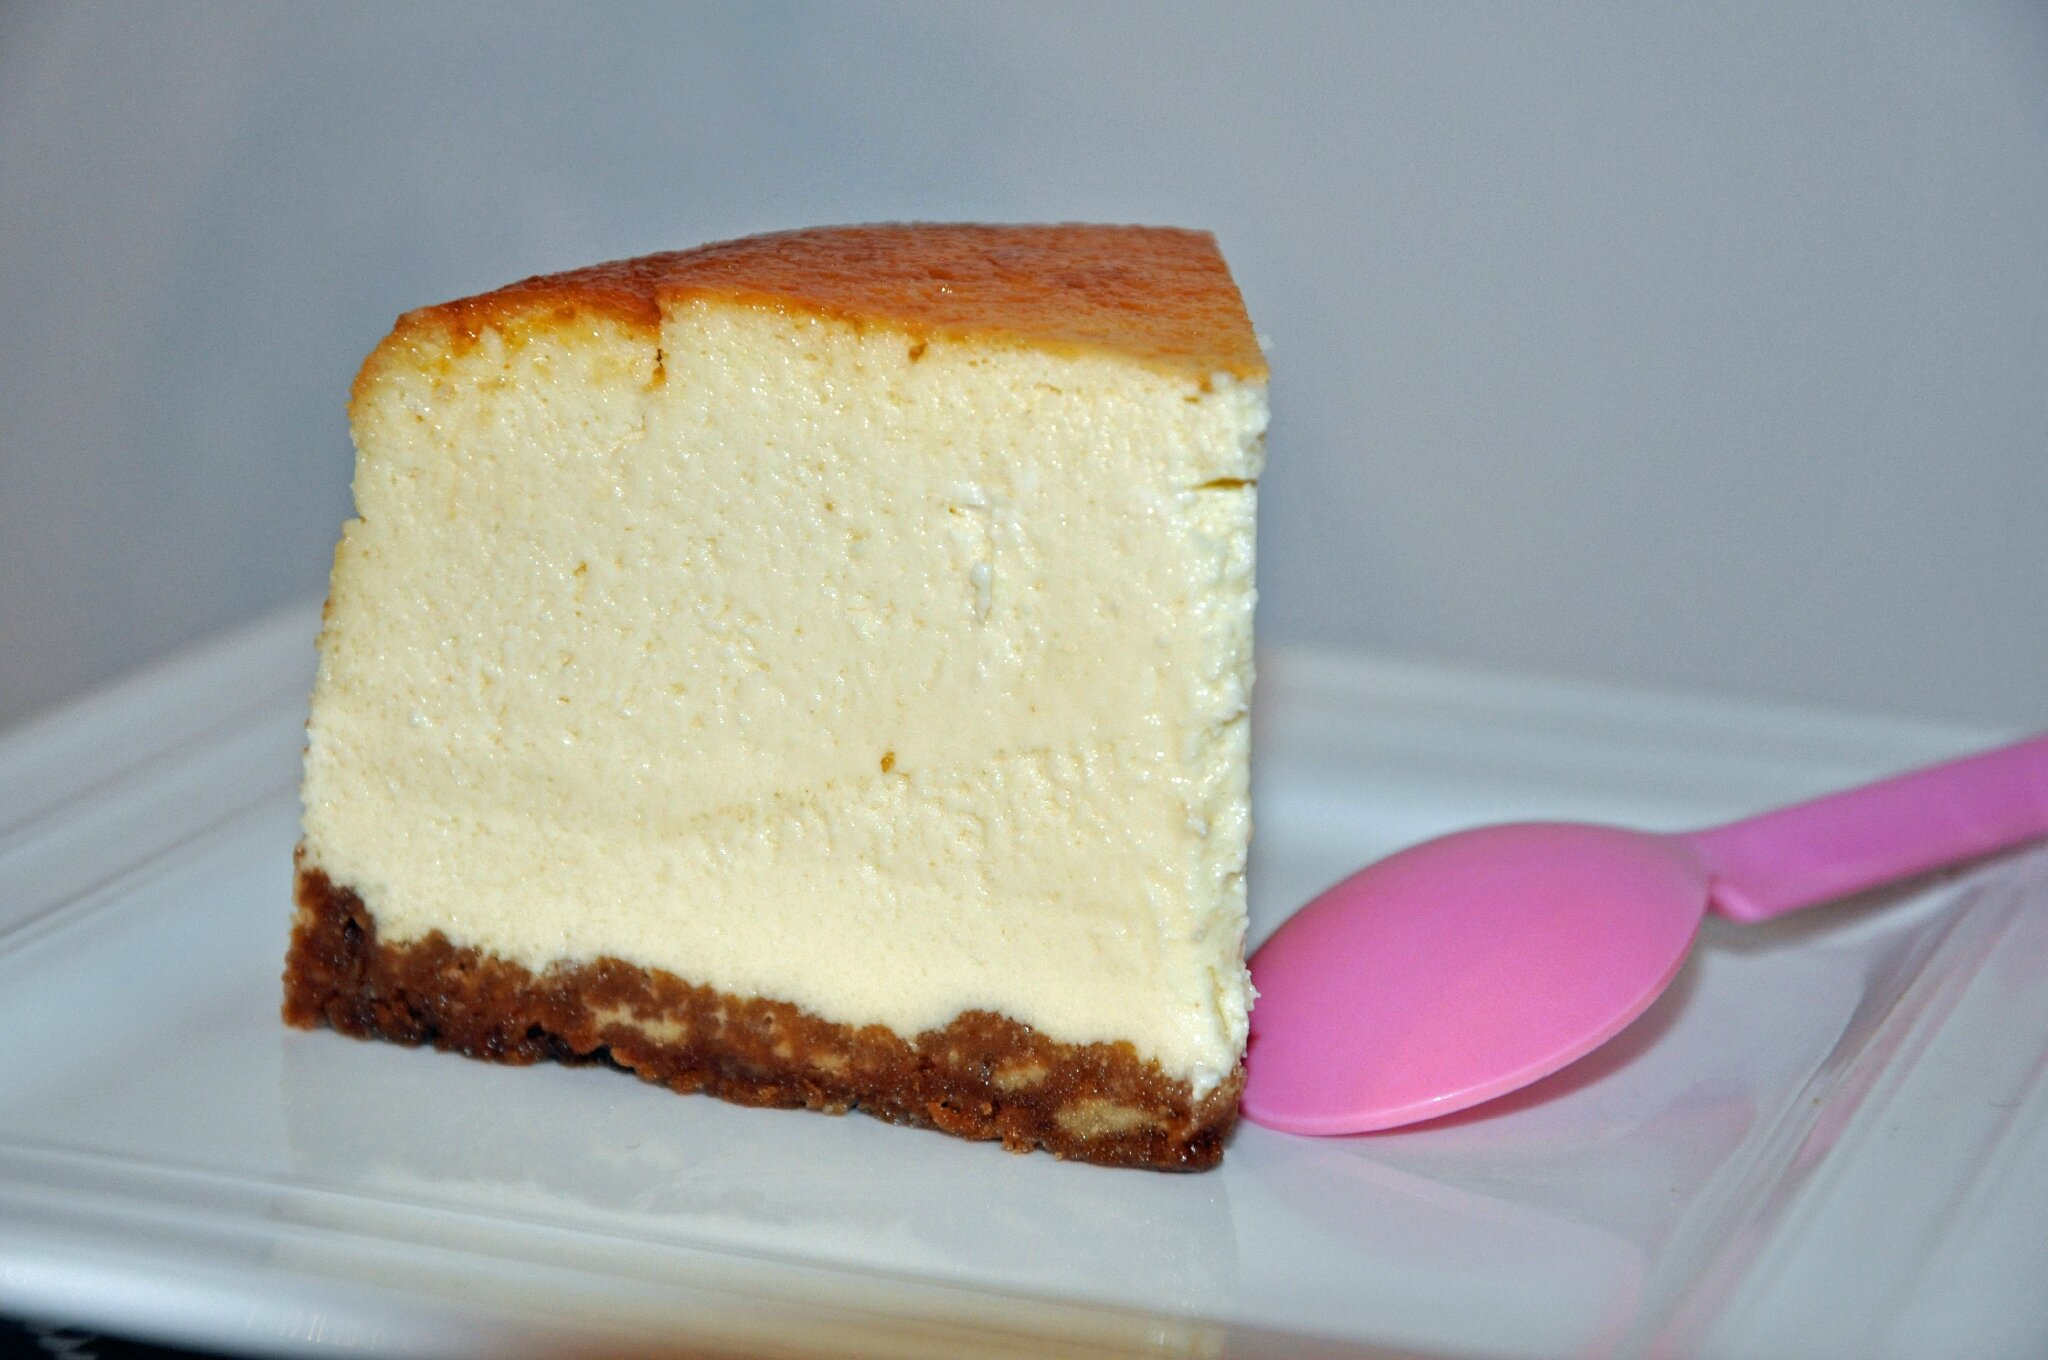 THE Cheesecake!